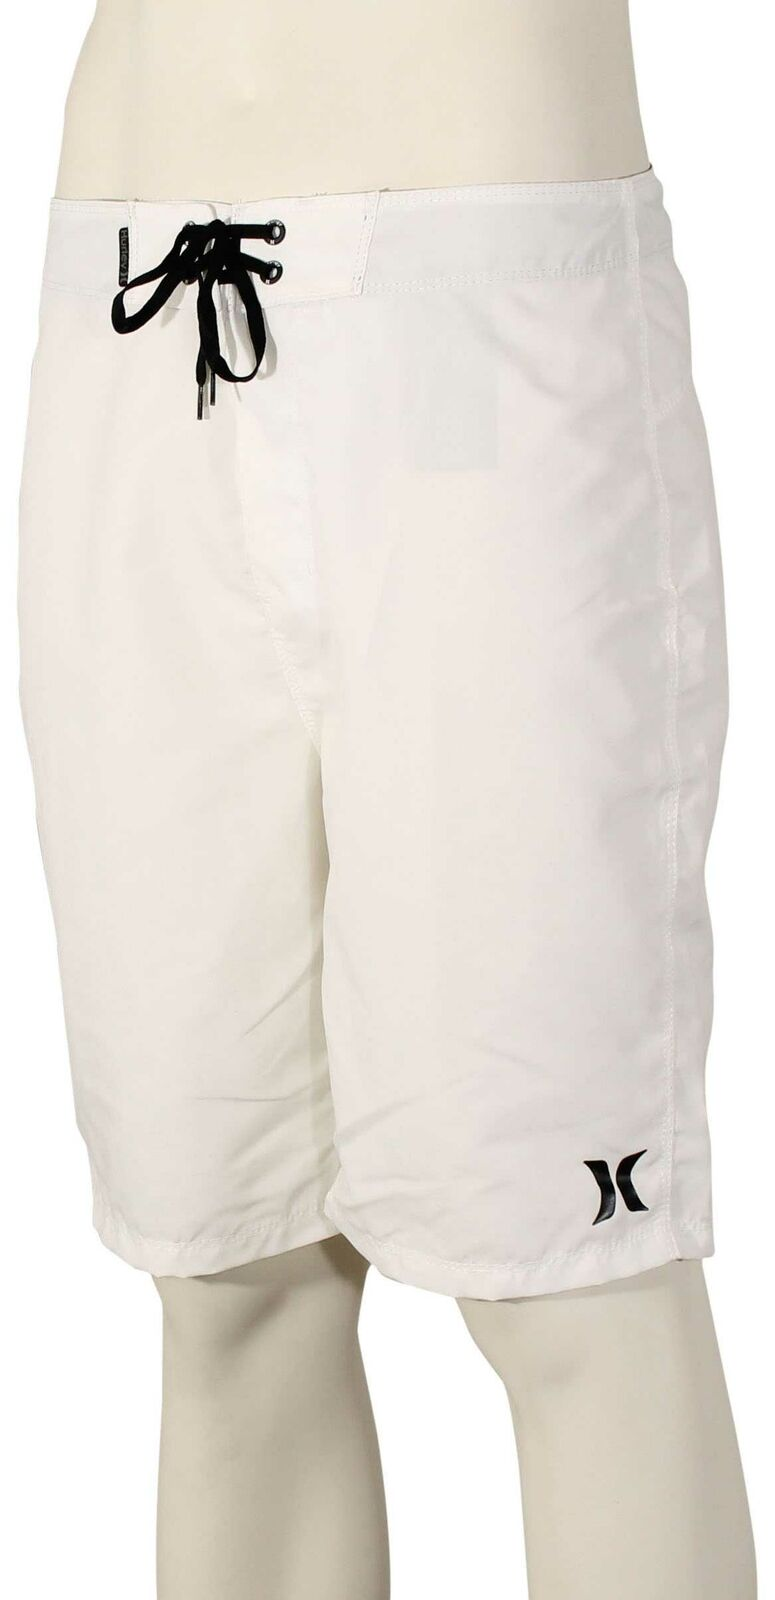 Hurley One and Only 2.0 Boardshorts - White - New